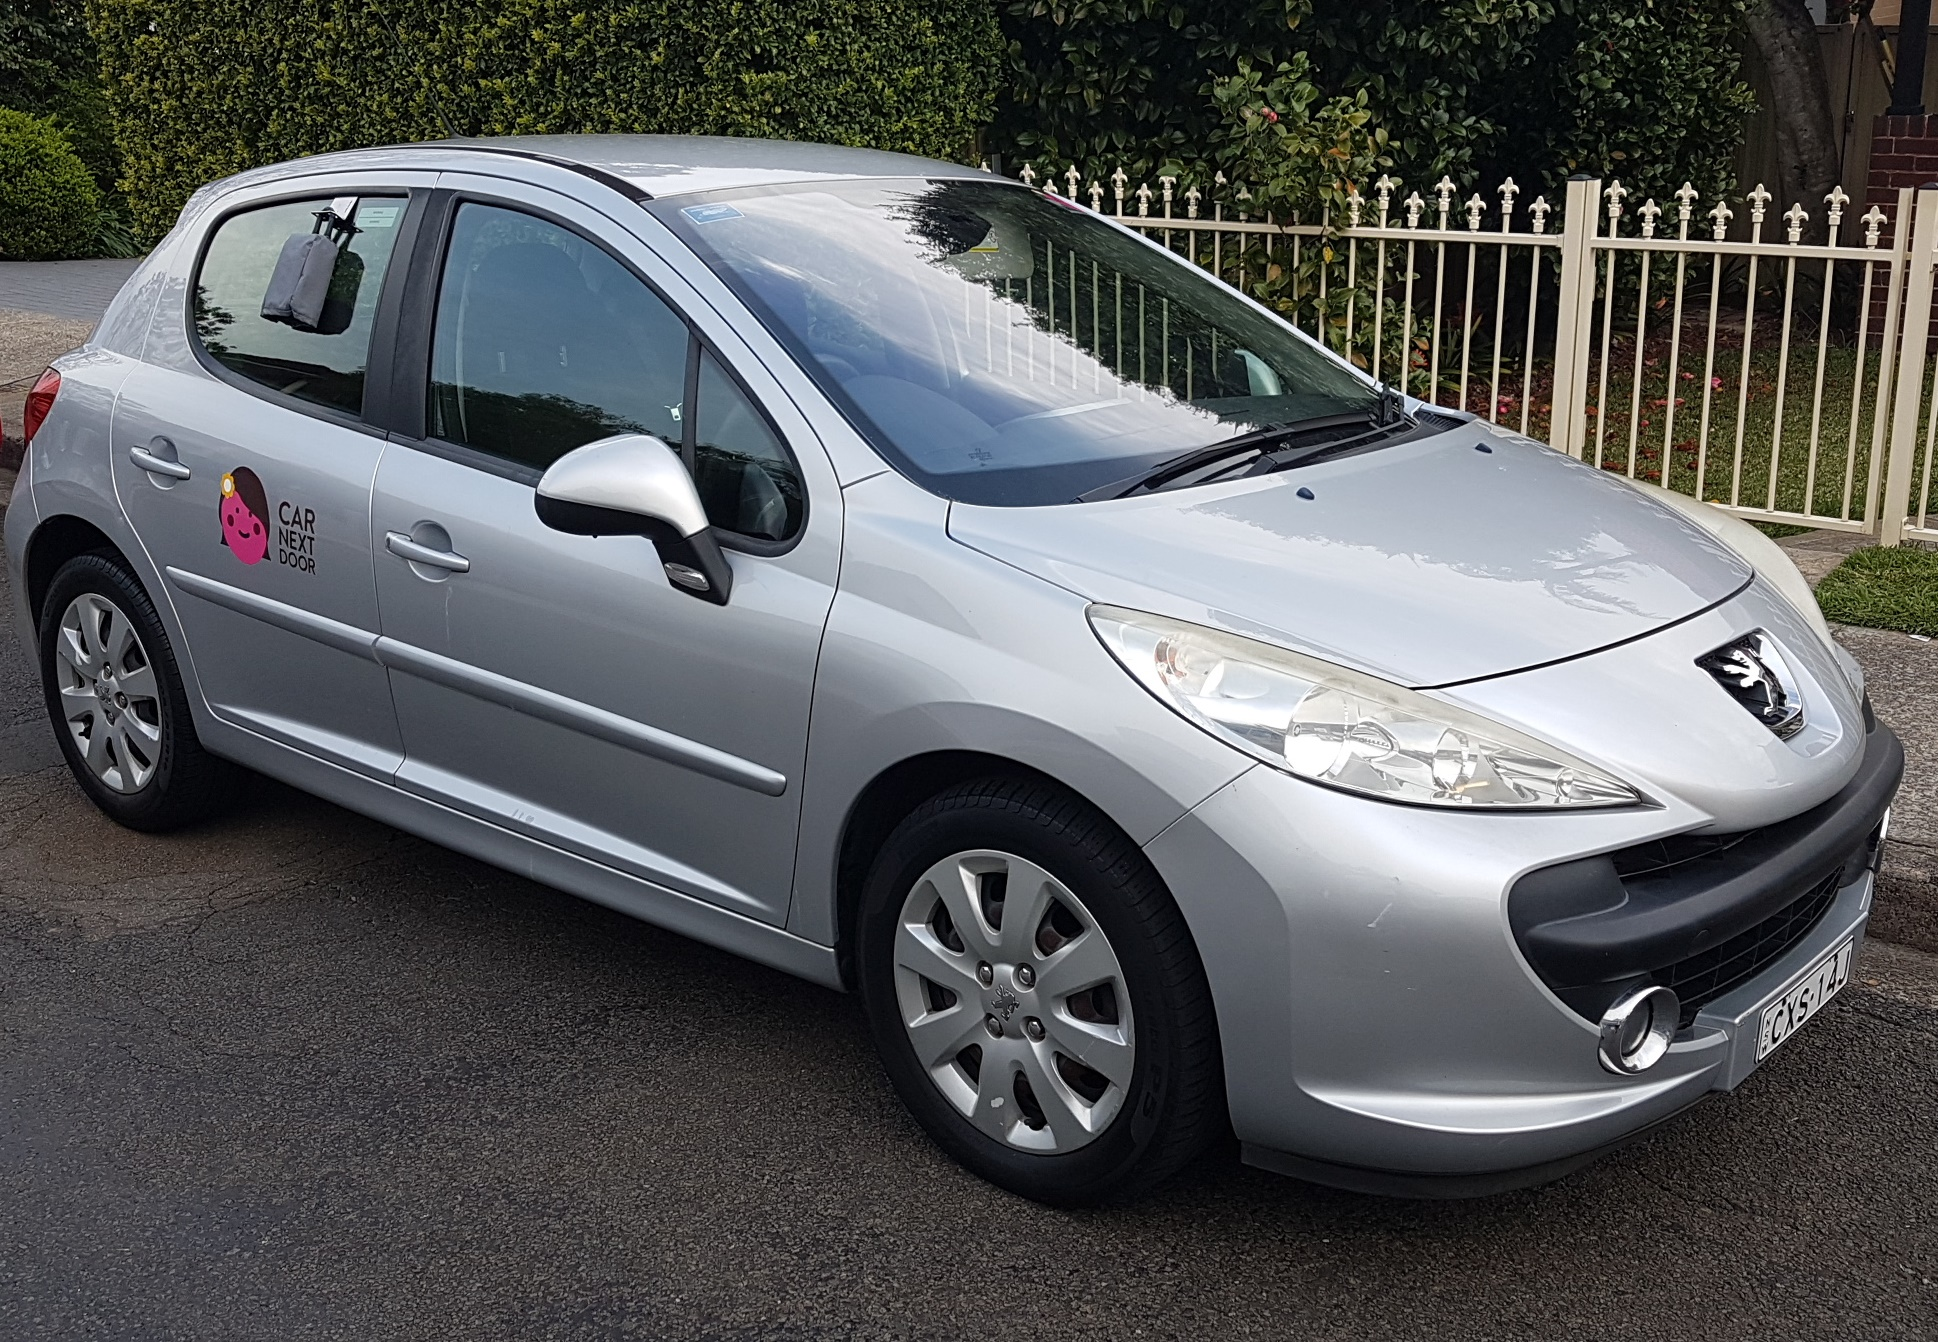 Picture of Jessica's 2007 Peugeot 207